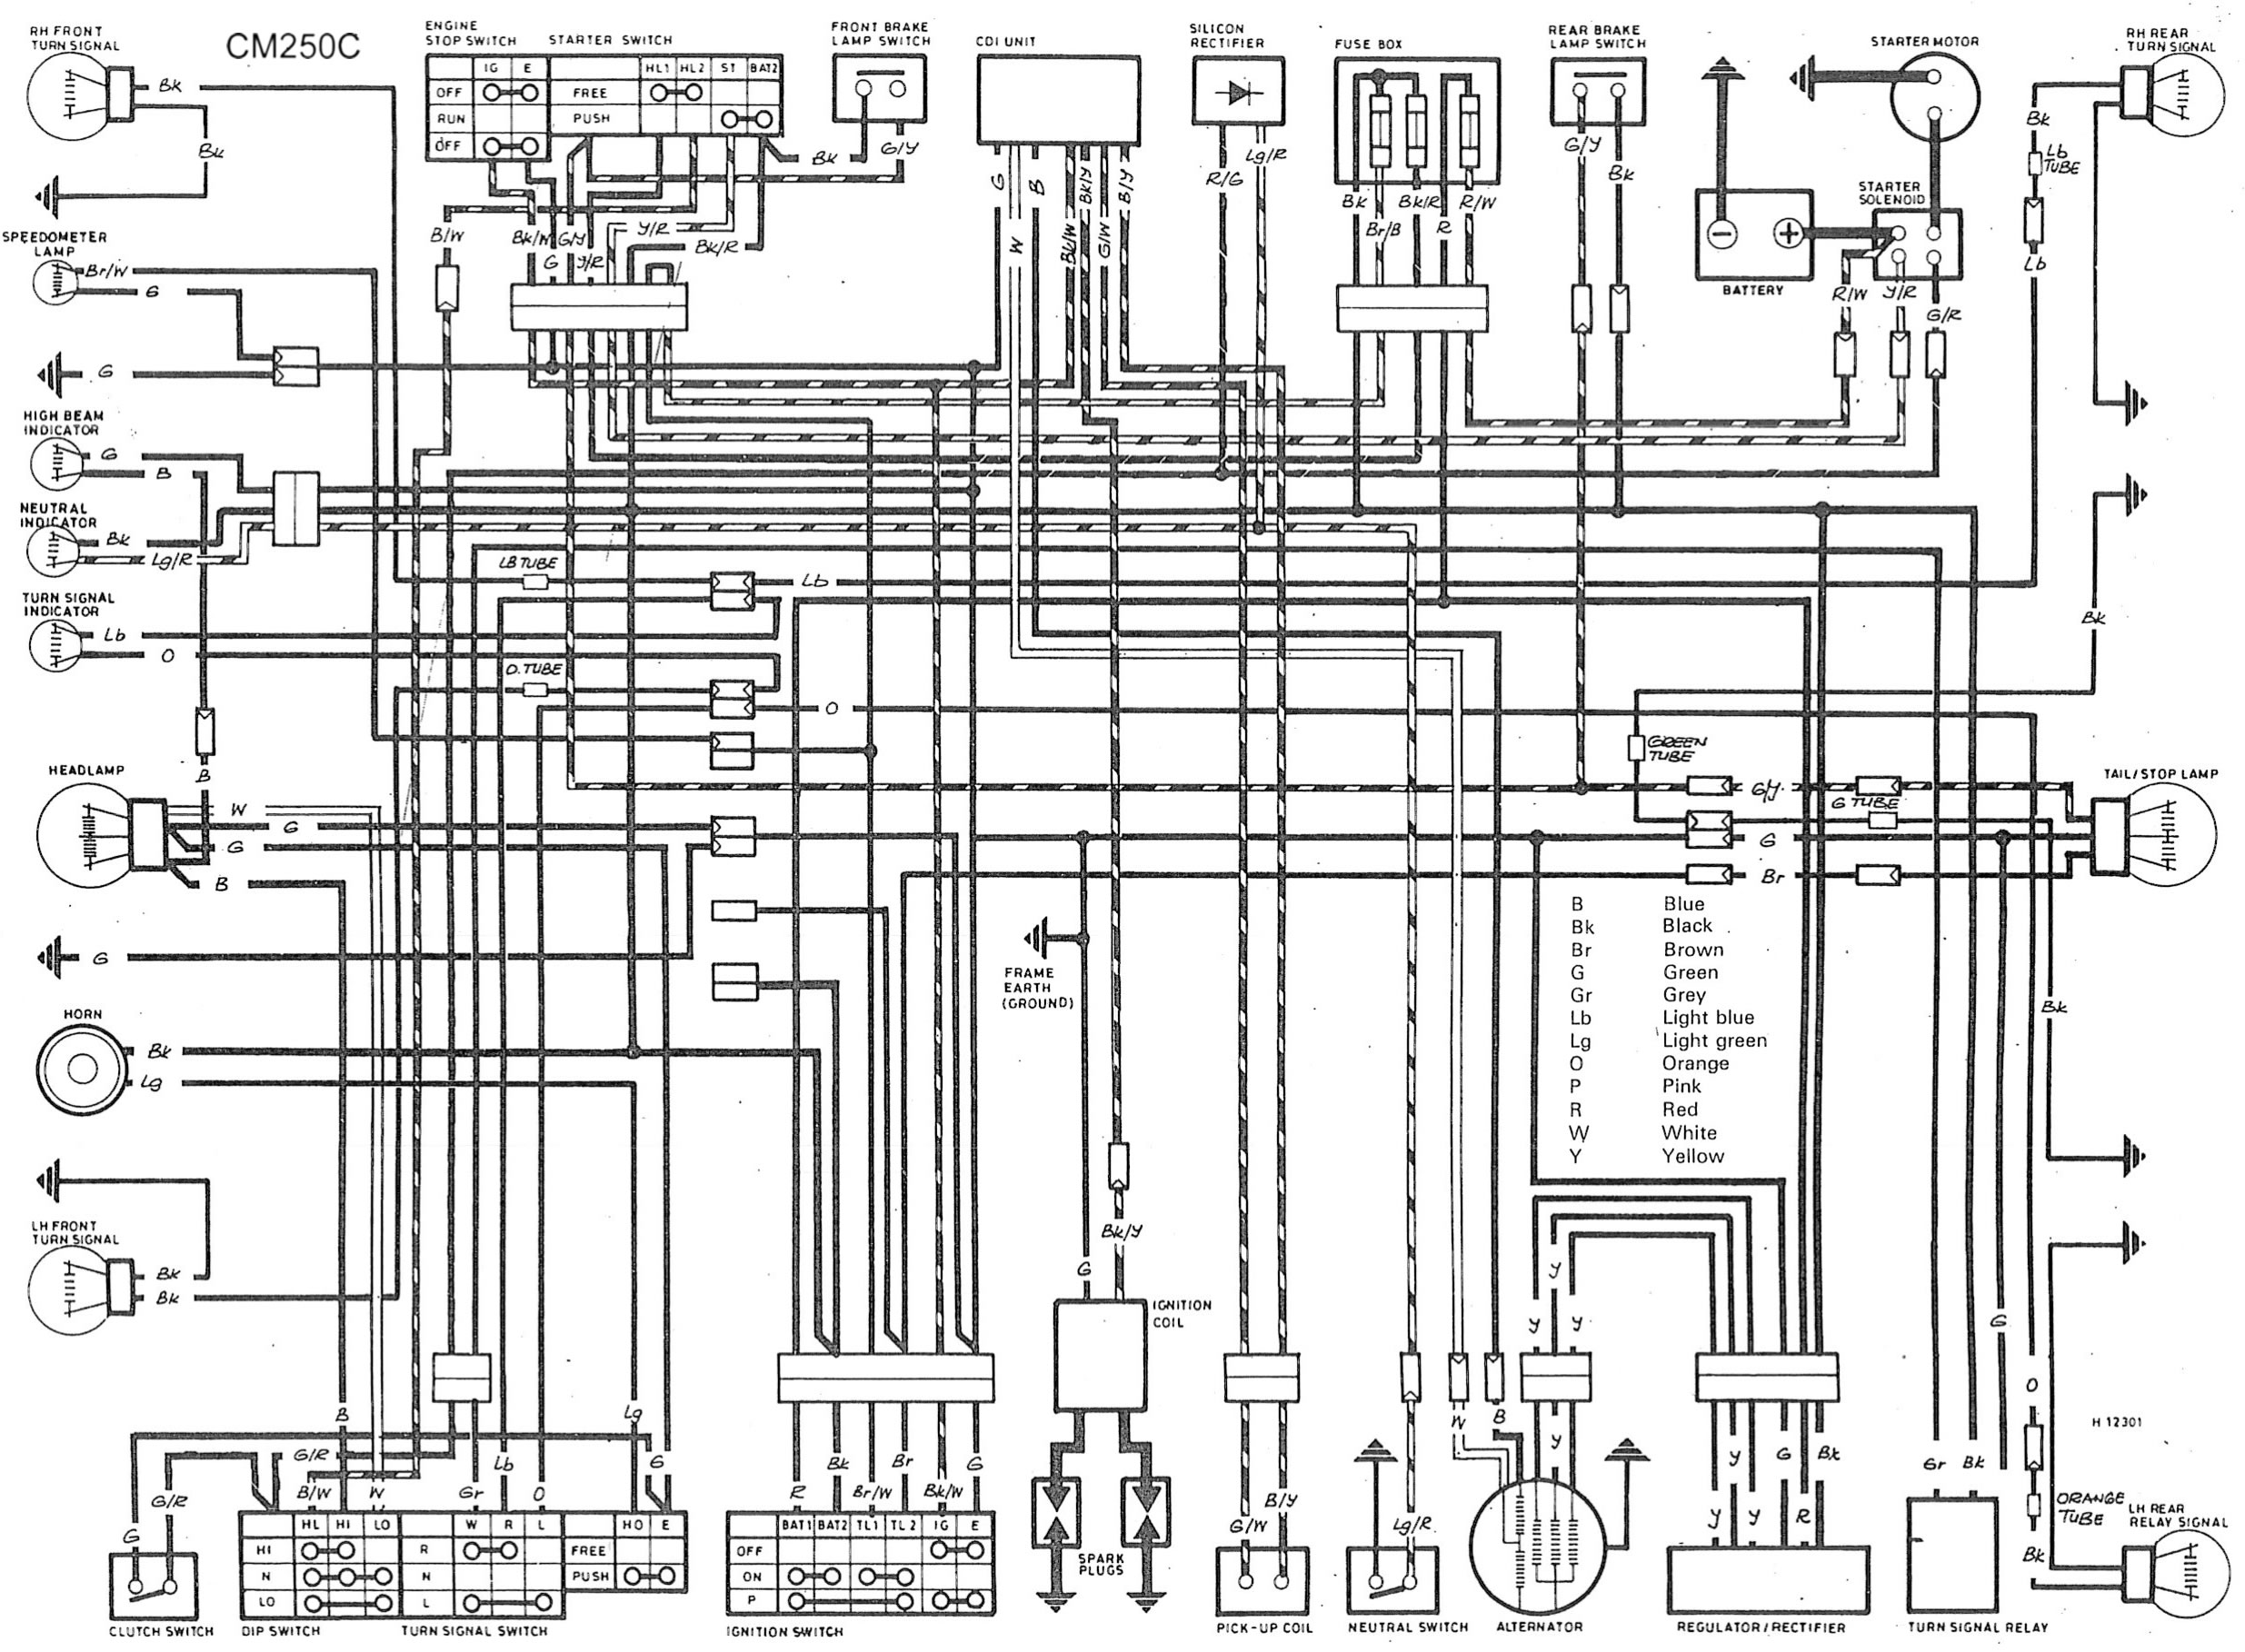 Wiring Diagram Needed Bad